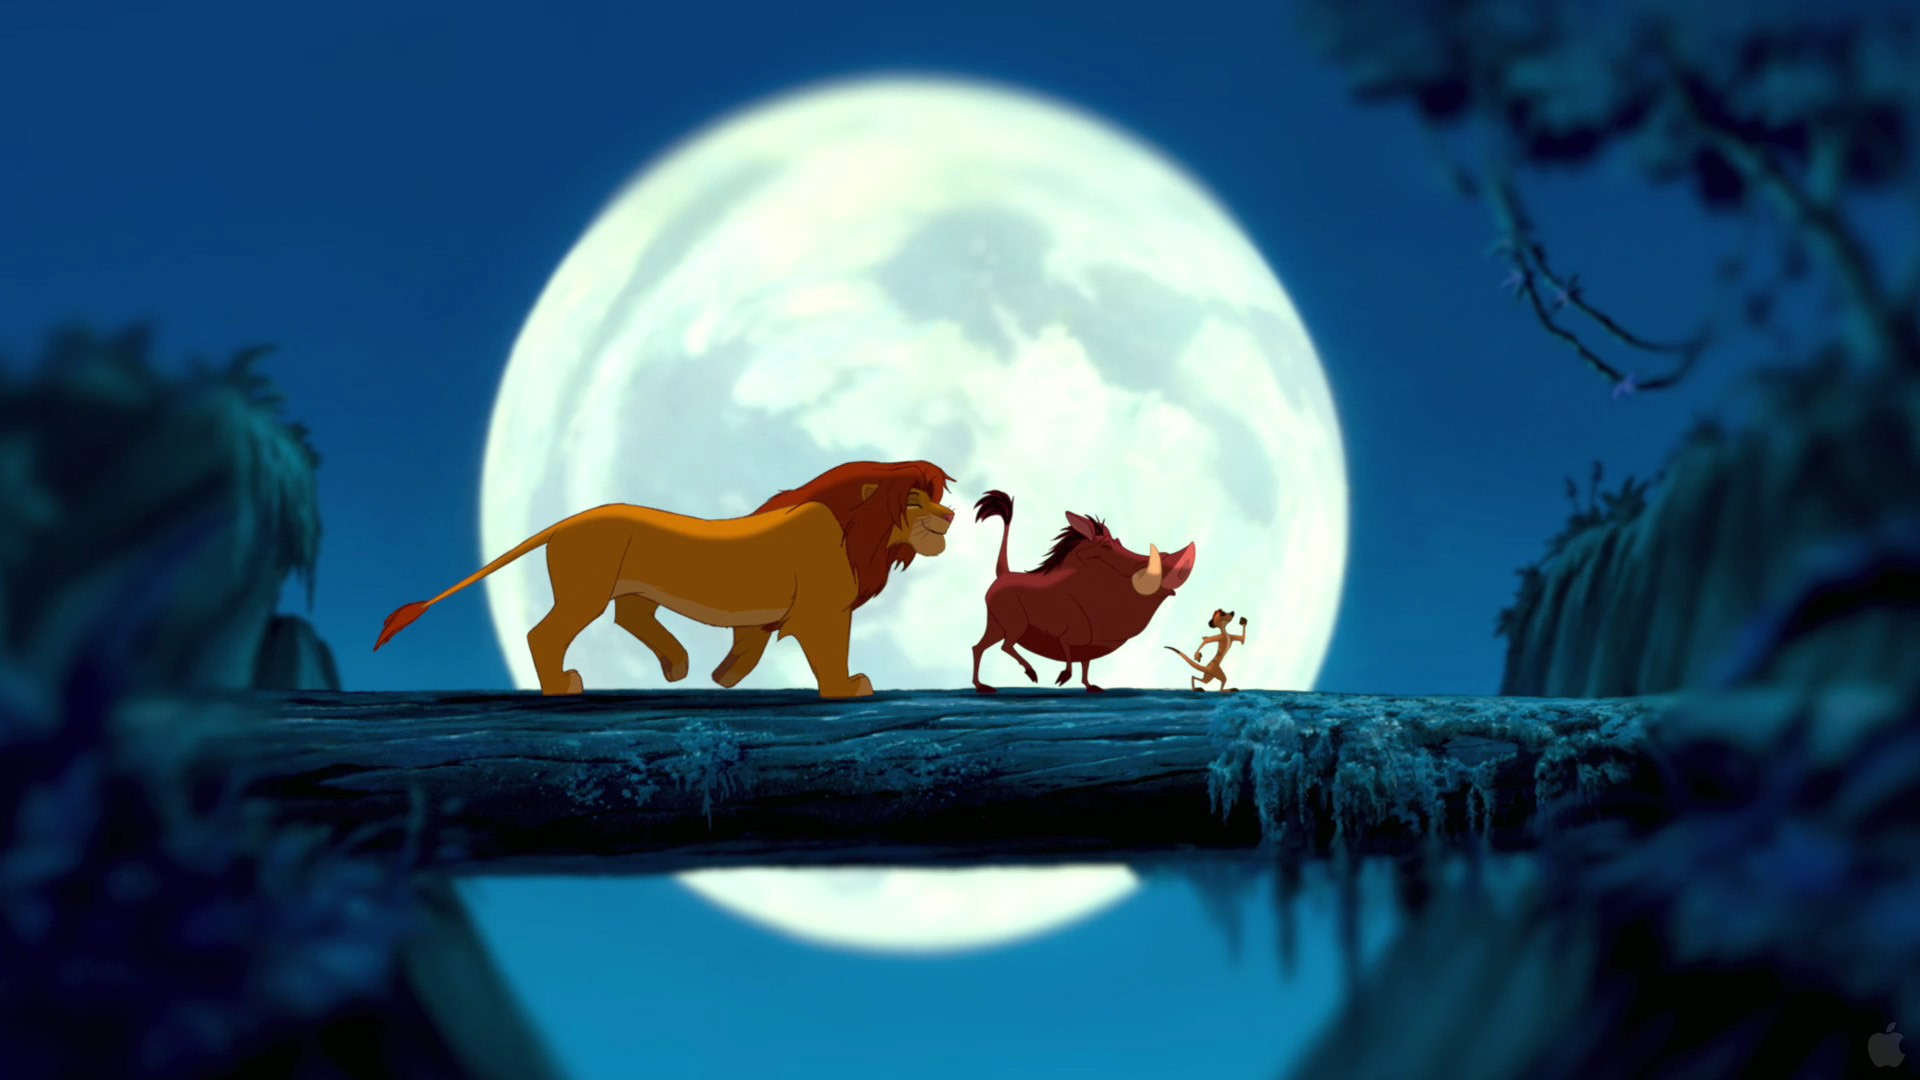 The Lion King Wallpapers Pictures Images